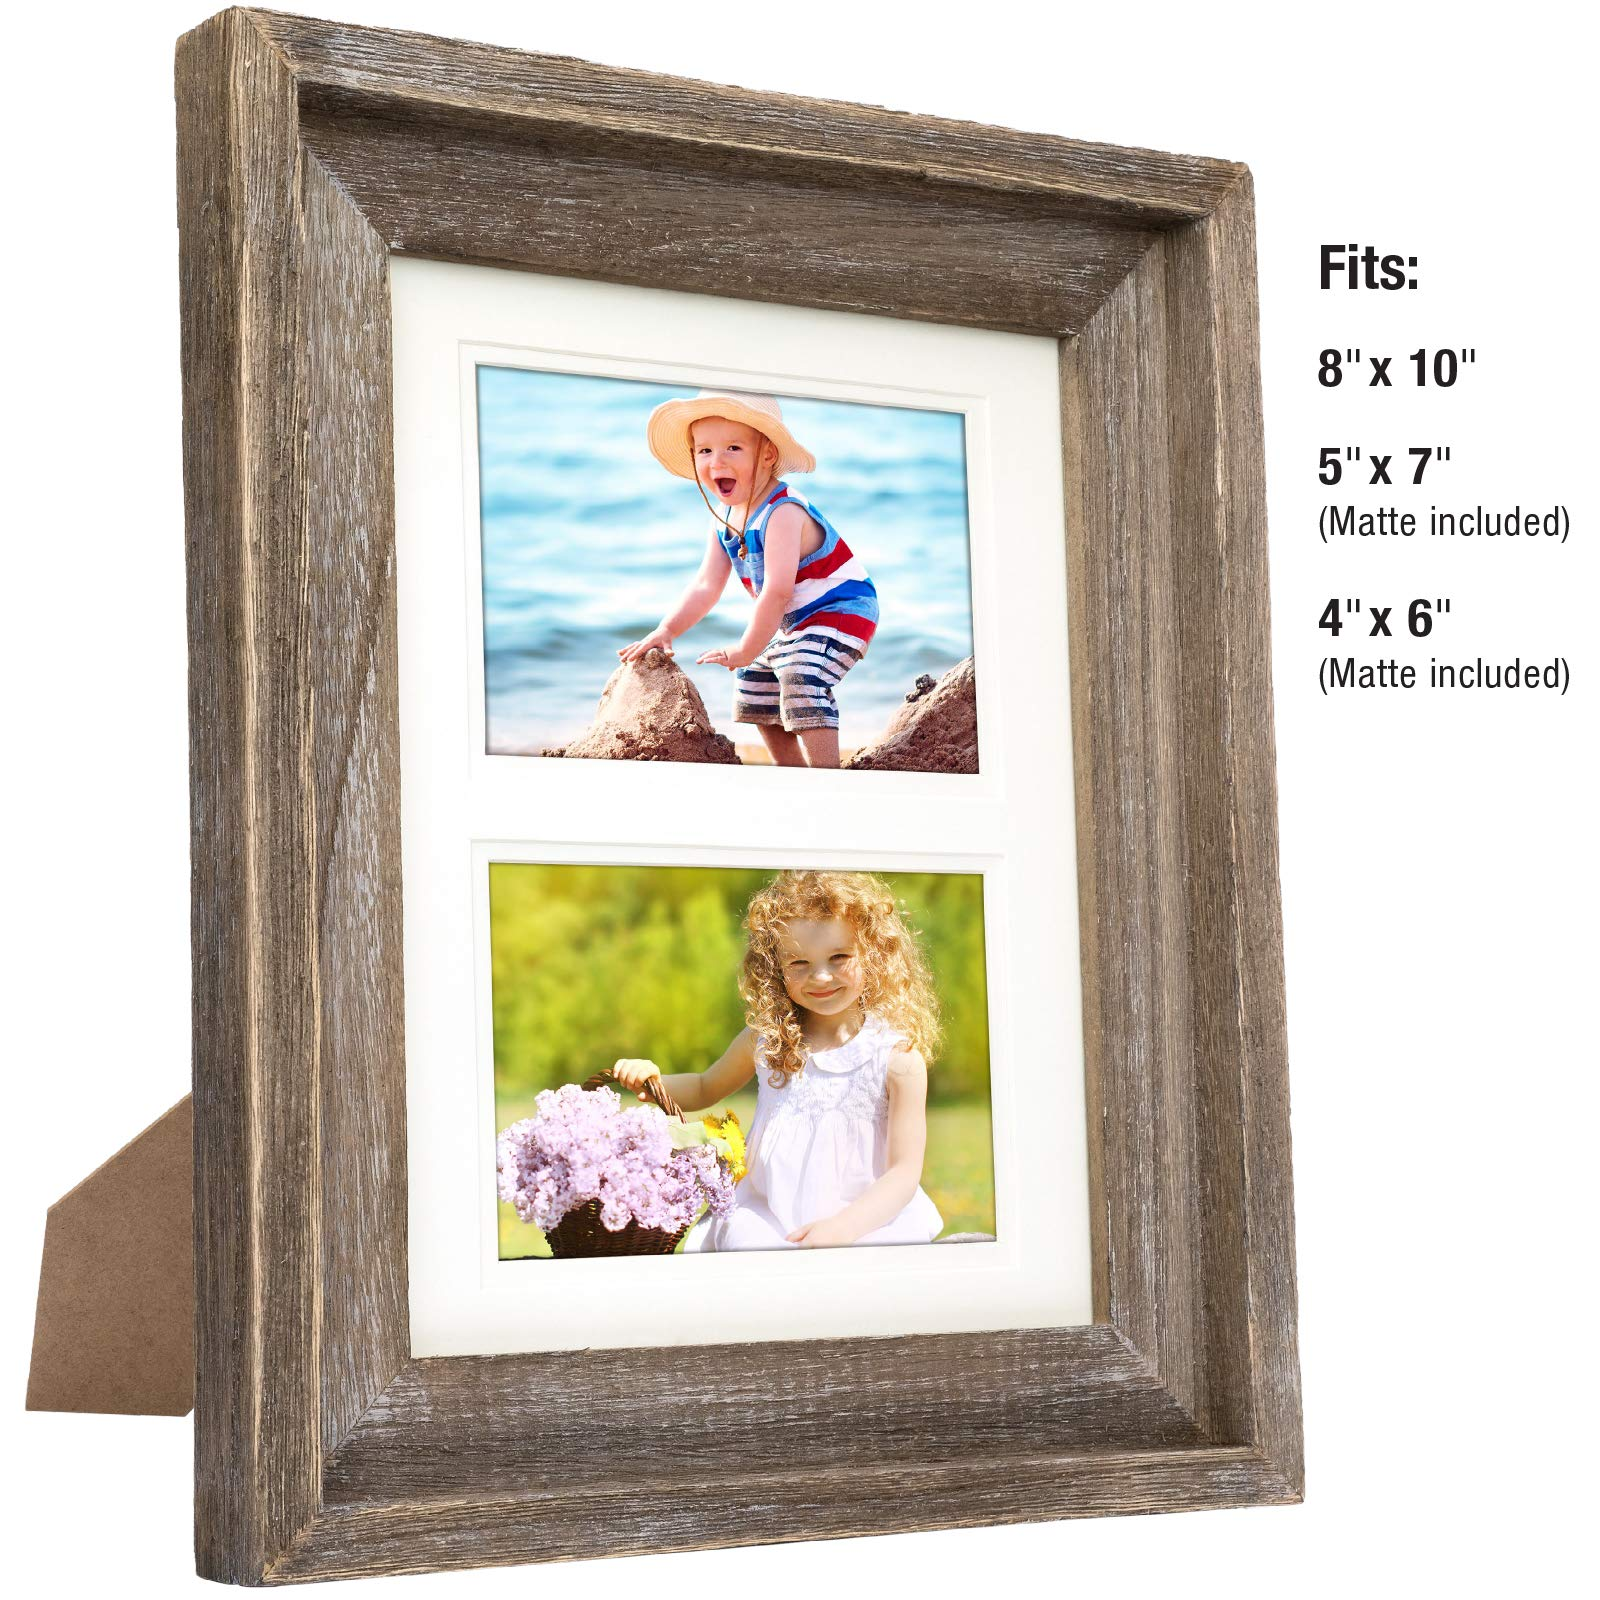 Rustic Barnwood 8x10 Picture Frame Set: Unique Photo Frame Holder for Wall Desktop or Tabletop Display. Thick Weathered Gray Wood Home Decor. Fits 8x10 or 5x7 or 4x6 with included Matte by Excello Global Products